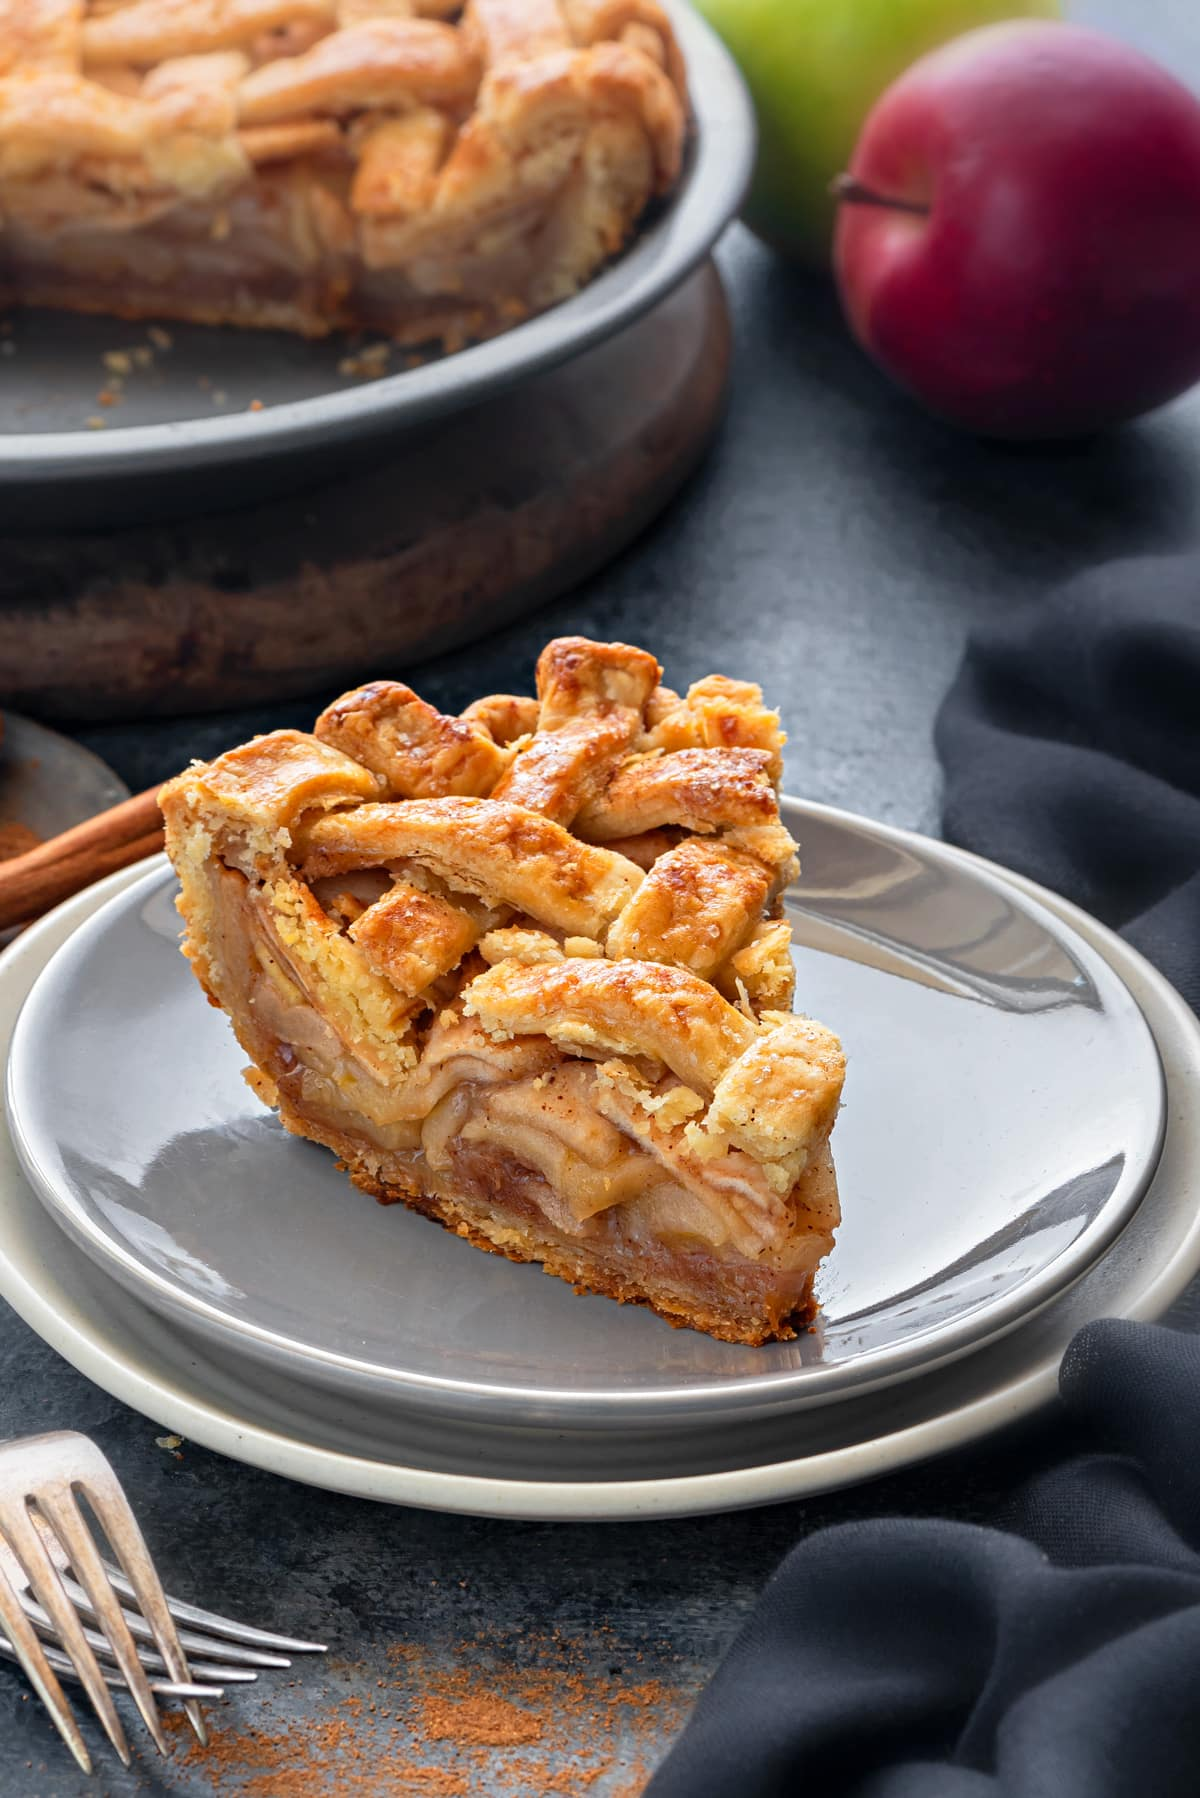 A thick slice of apple pie, with a golden brown lattice top.